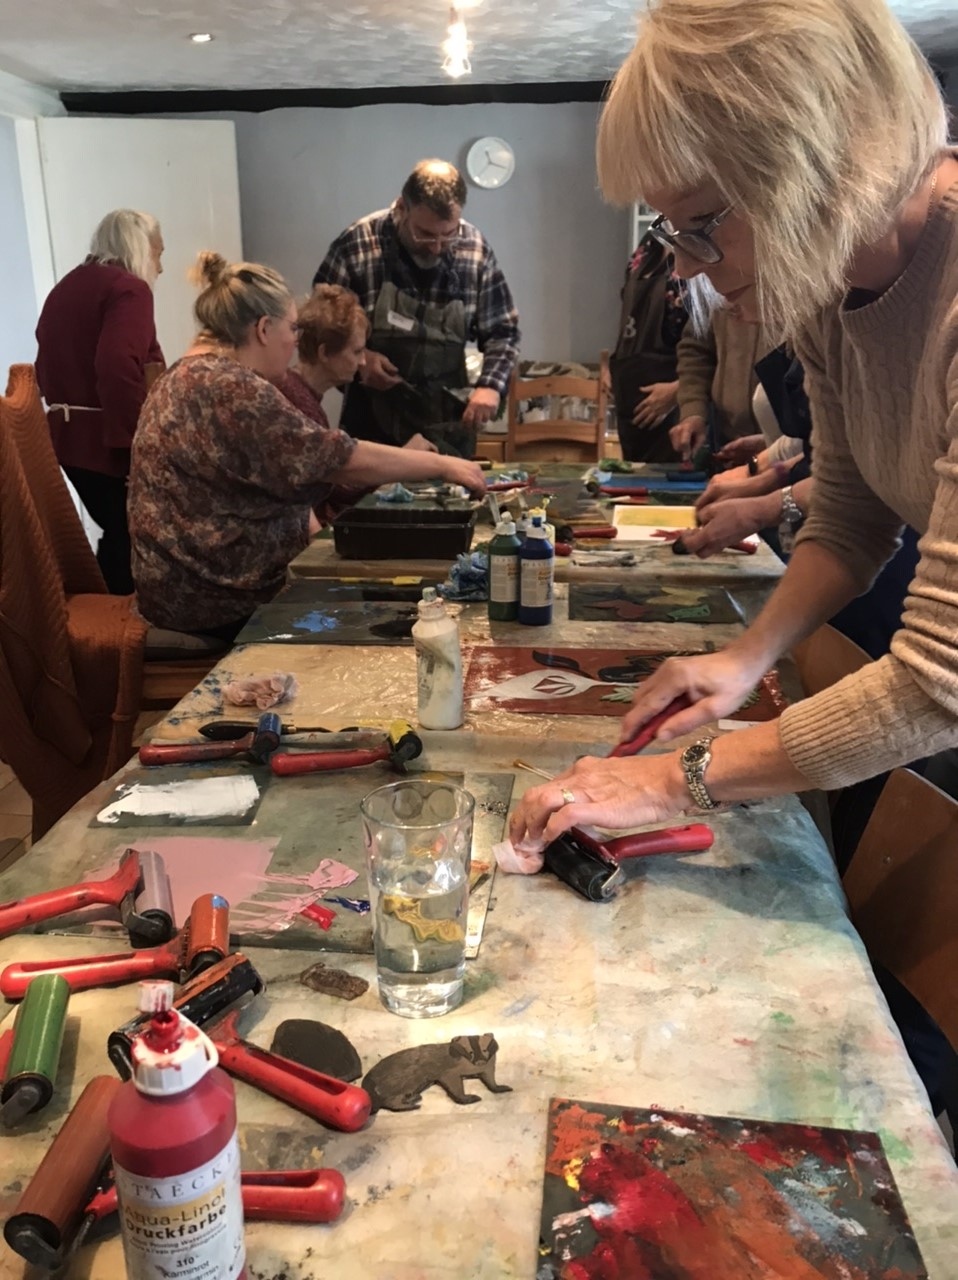 A photo from one of the taster workshops. For this workshop, the group were trying screenprinting. The group are sitting and standing around a large long table, with rollers, paint and printing stamps scattered on the table.